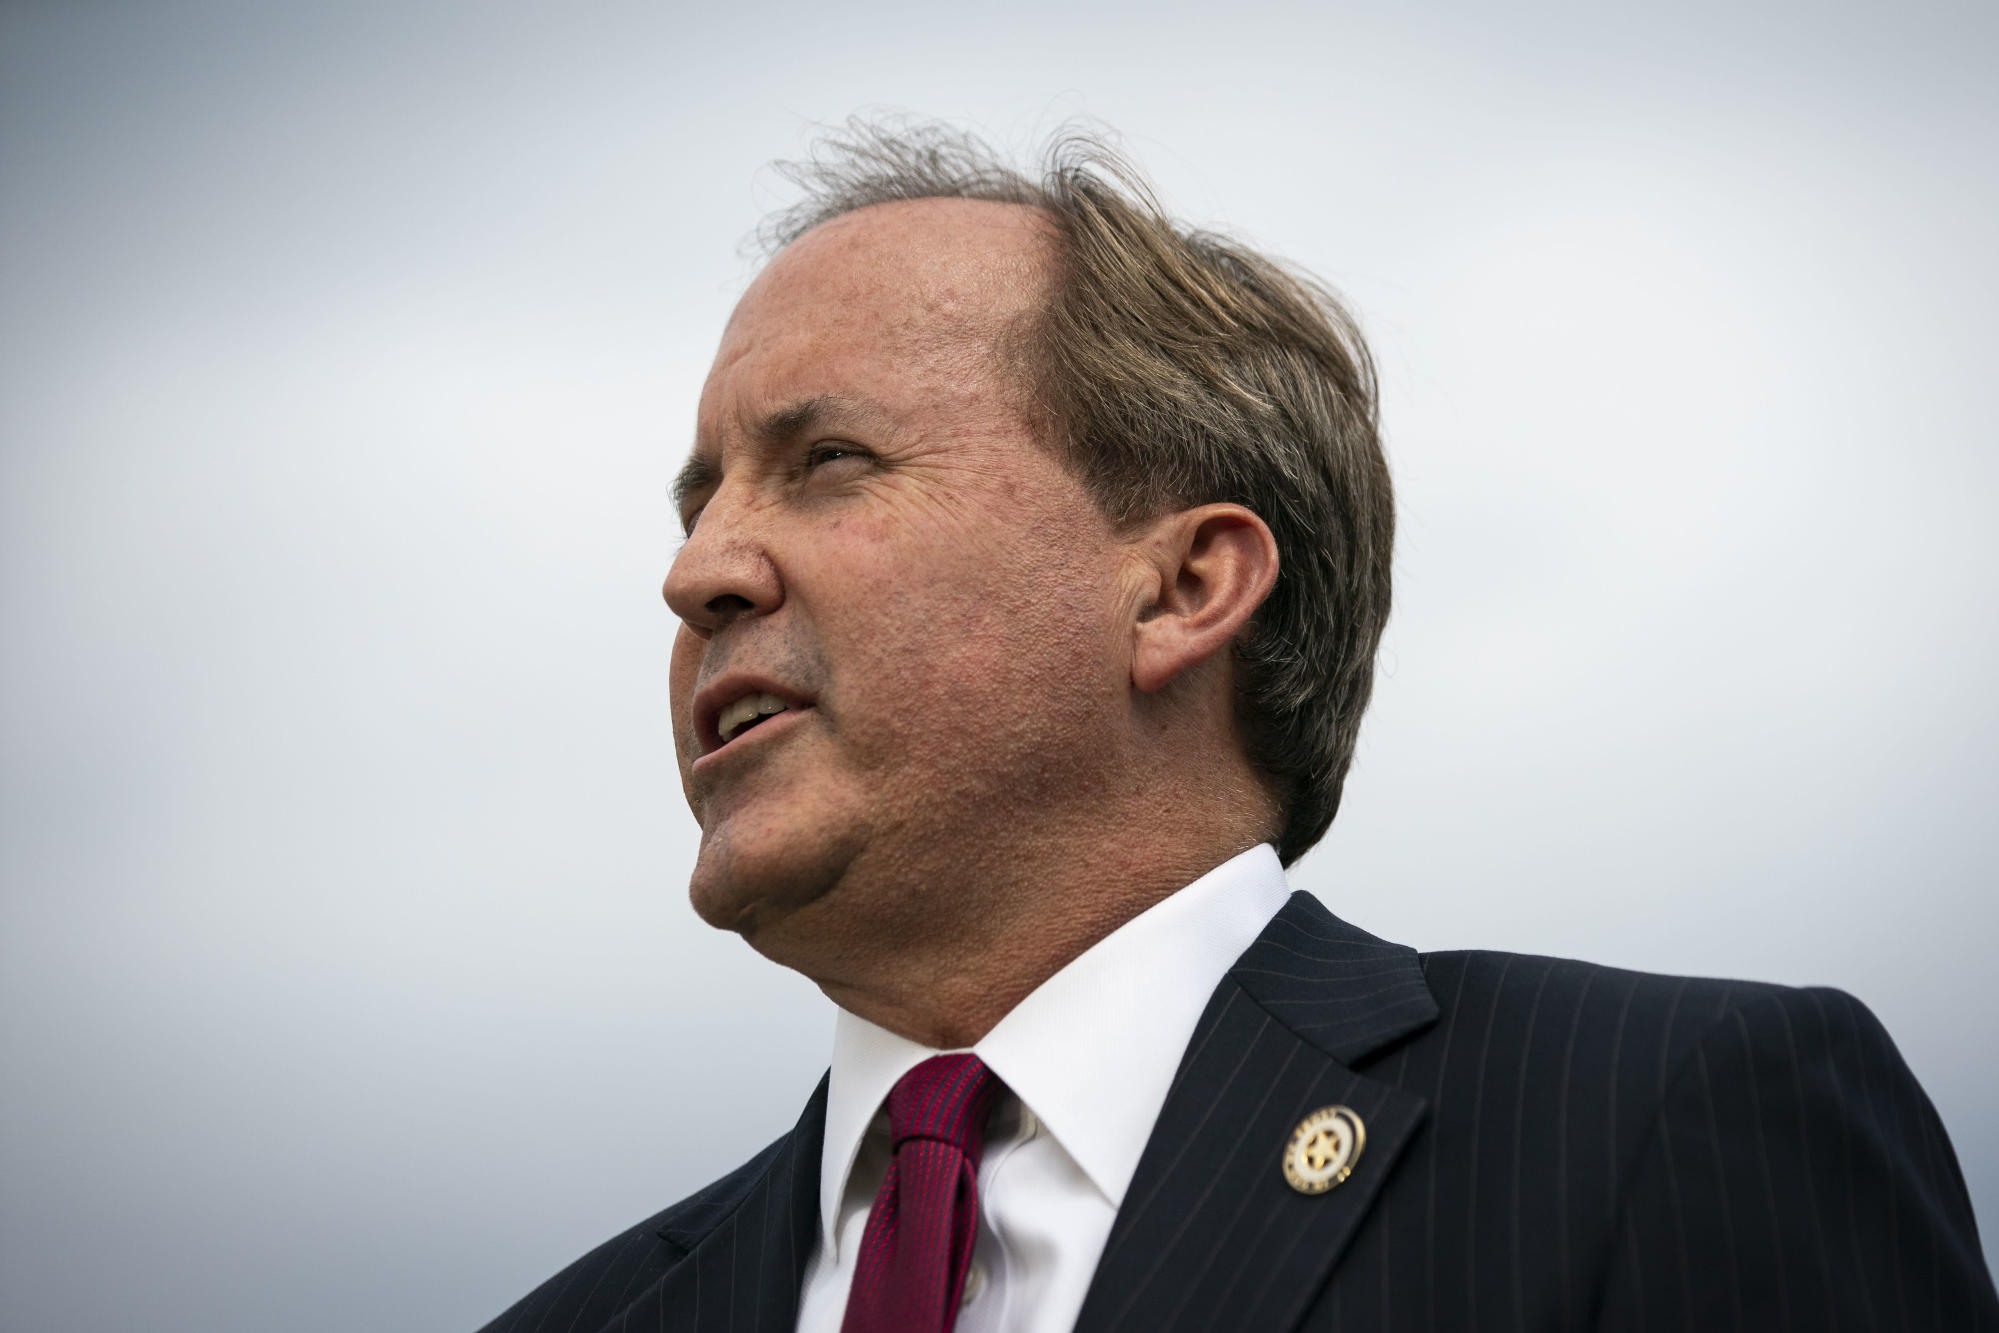 Ken Paxton Fought Trump's Legal Wars From Texas. Now He's in Trouble.